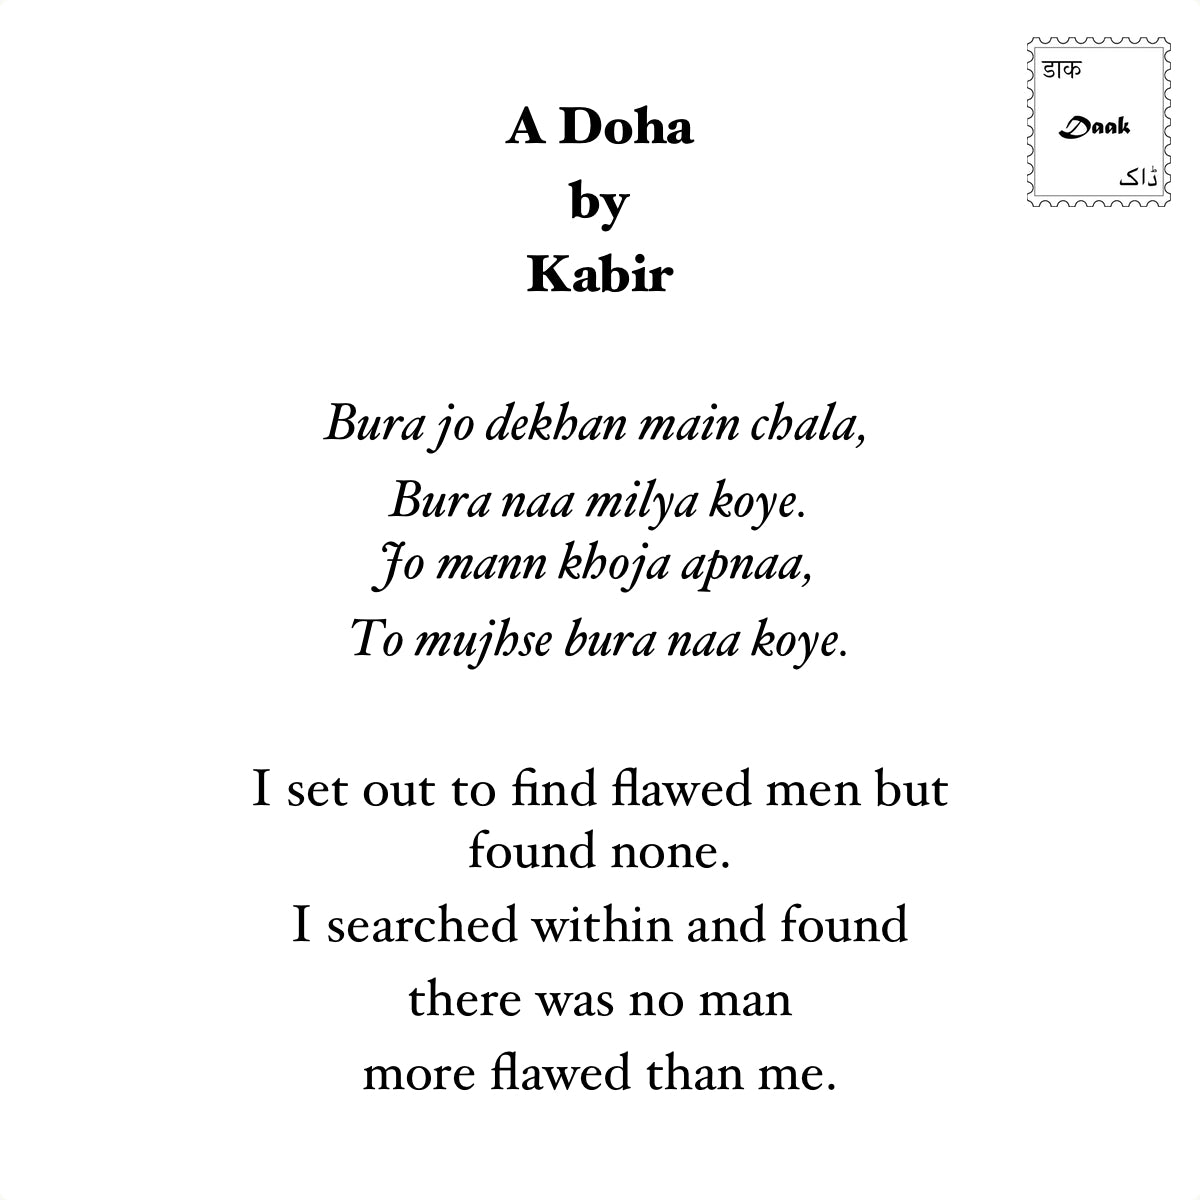 'Doha' - Framed Quote by Kabir